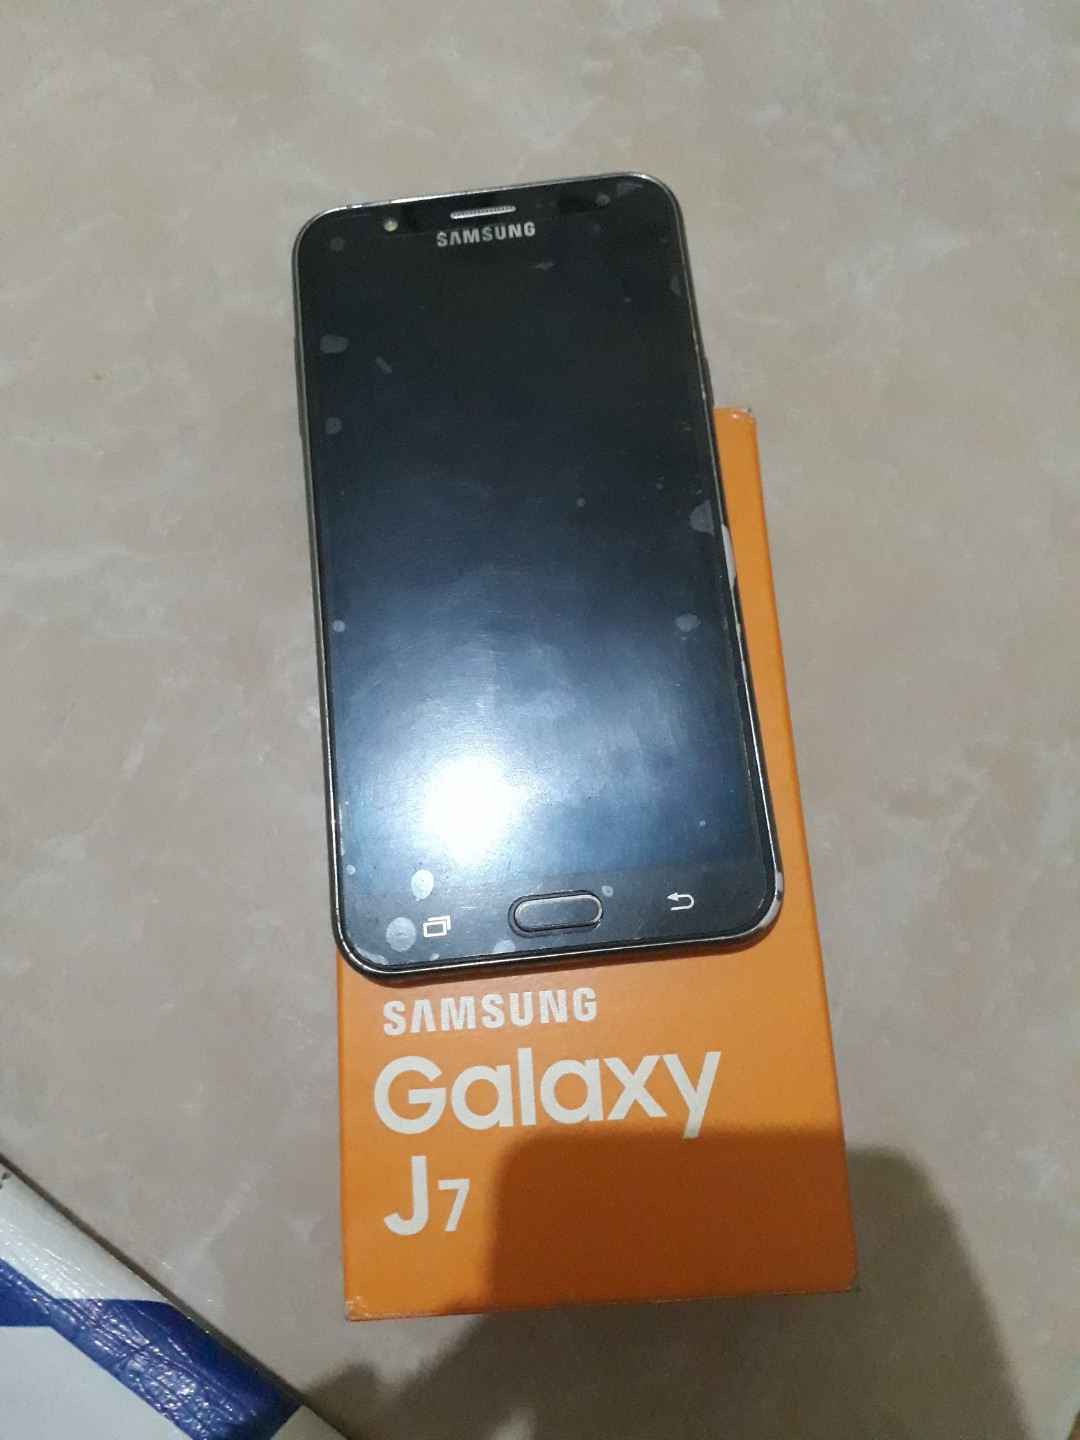 Samsung Galaxy J7 16GB Mobile Phones Tablets Android On Carousell